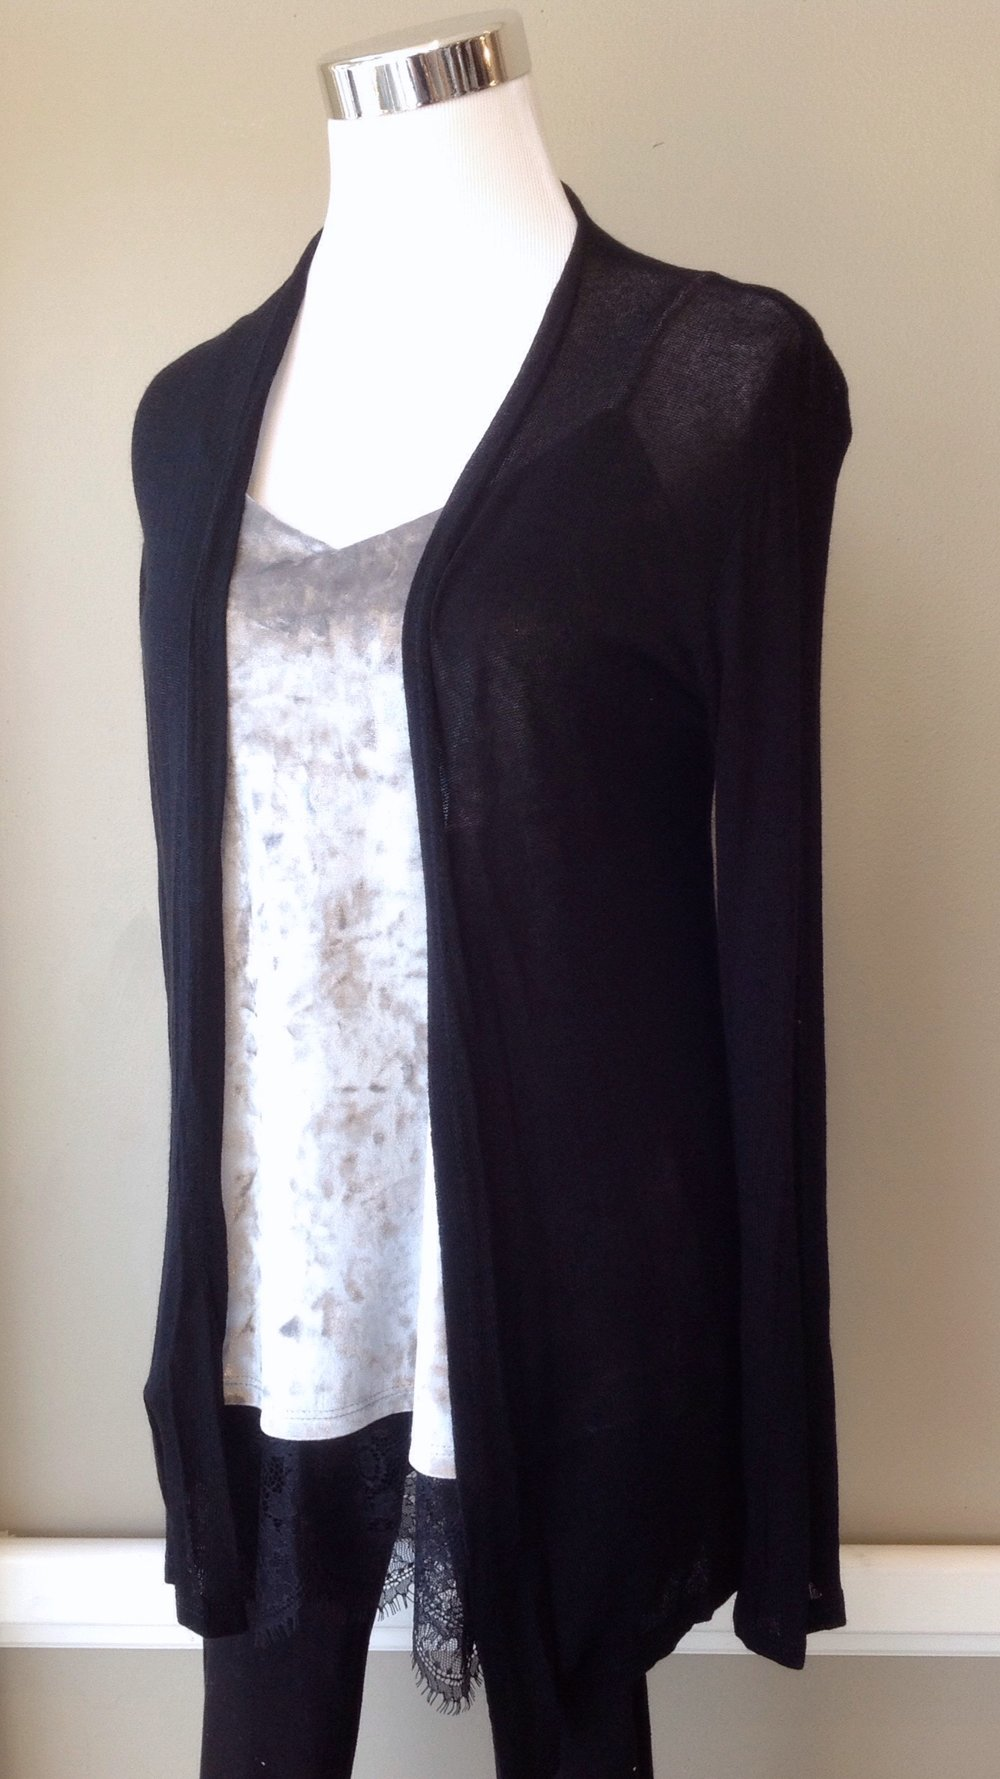 Sheer open front cardigan in black, $28